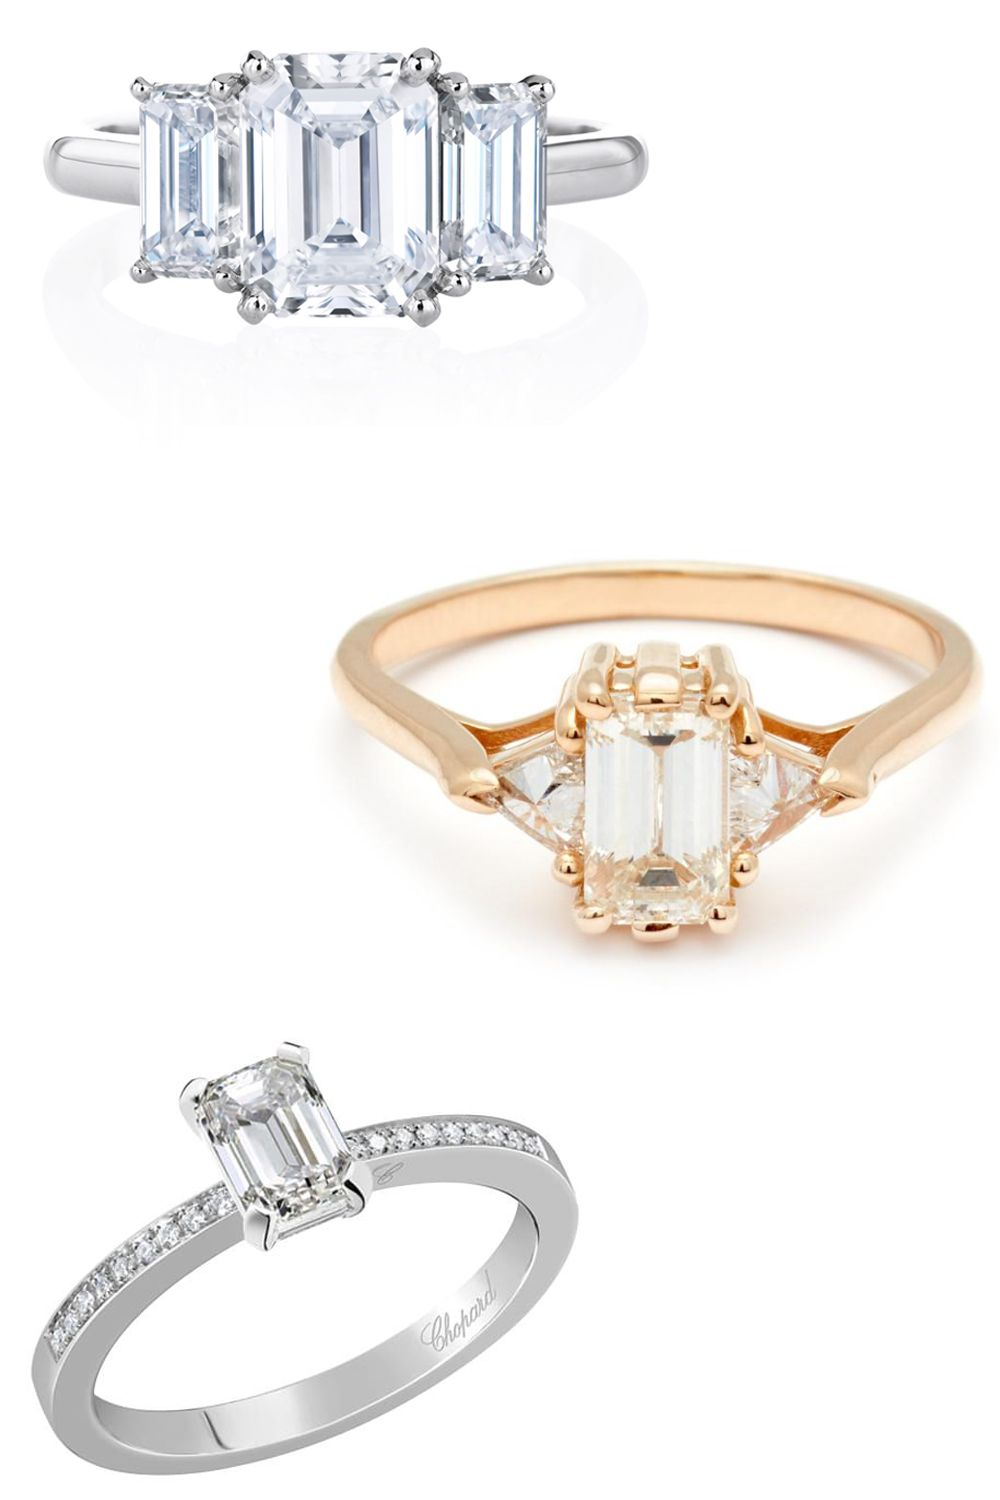 Engagement Ring Cuts Every Woman Should Know Best Diamond